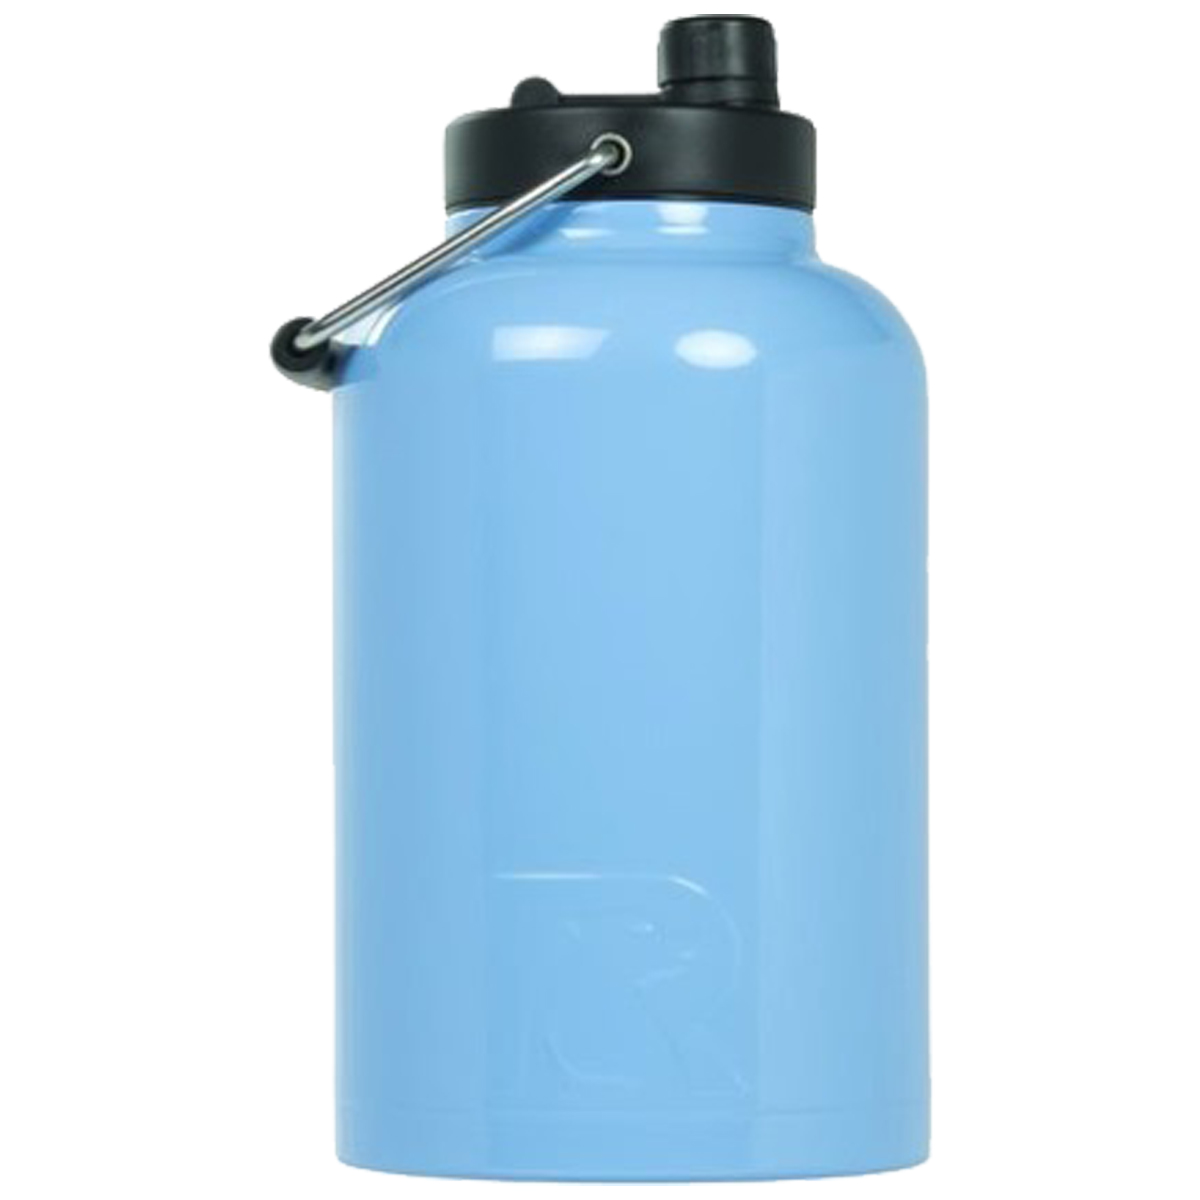 8c91331c85 RTIC One Gallon Carolina Blue Stainless Steel Jug - RS-ONEGCB-DC ...